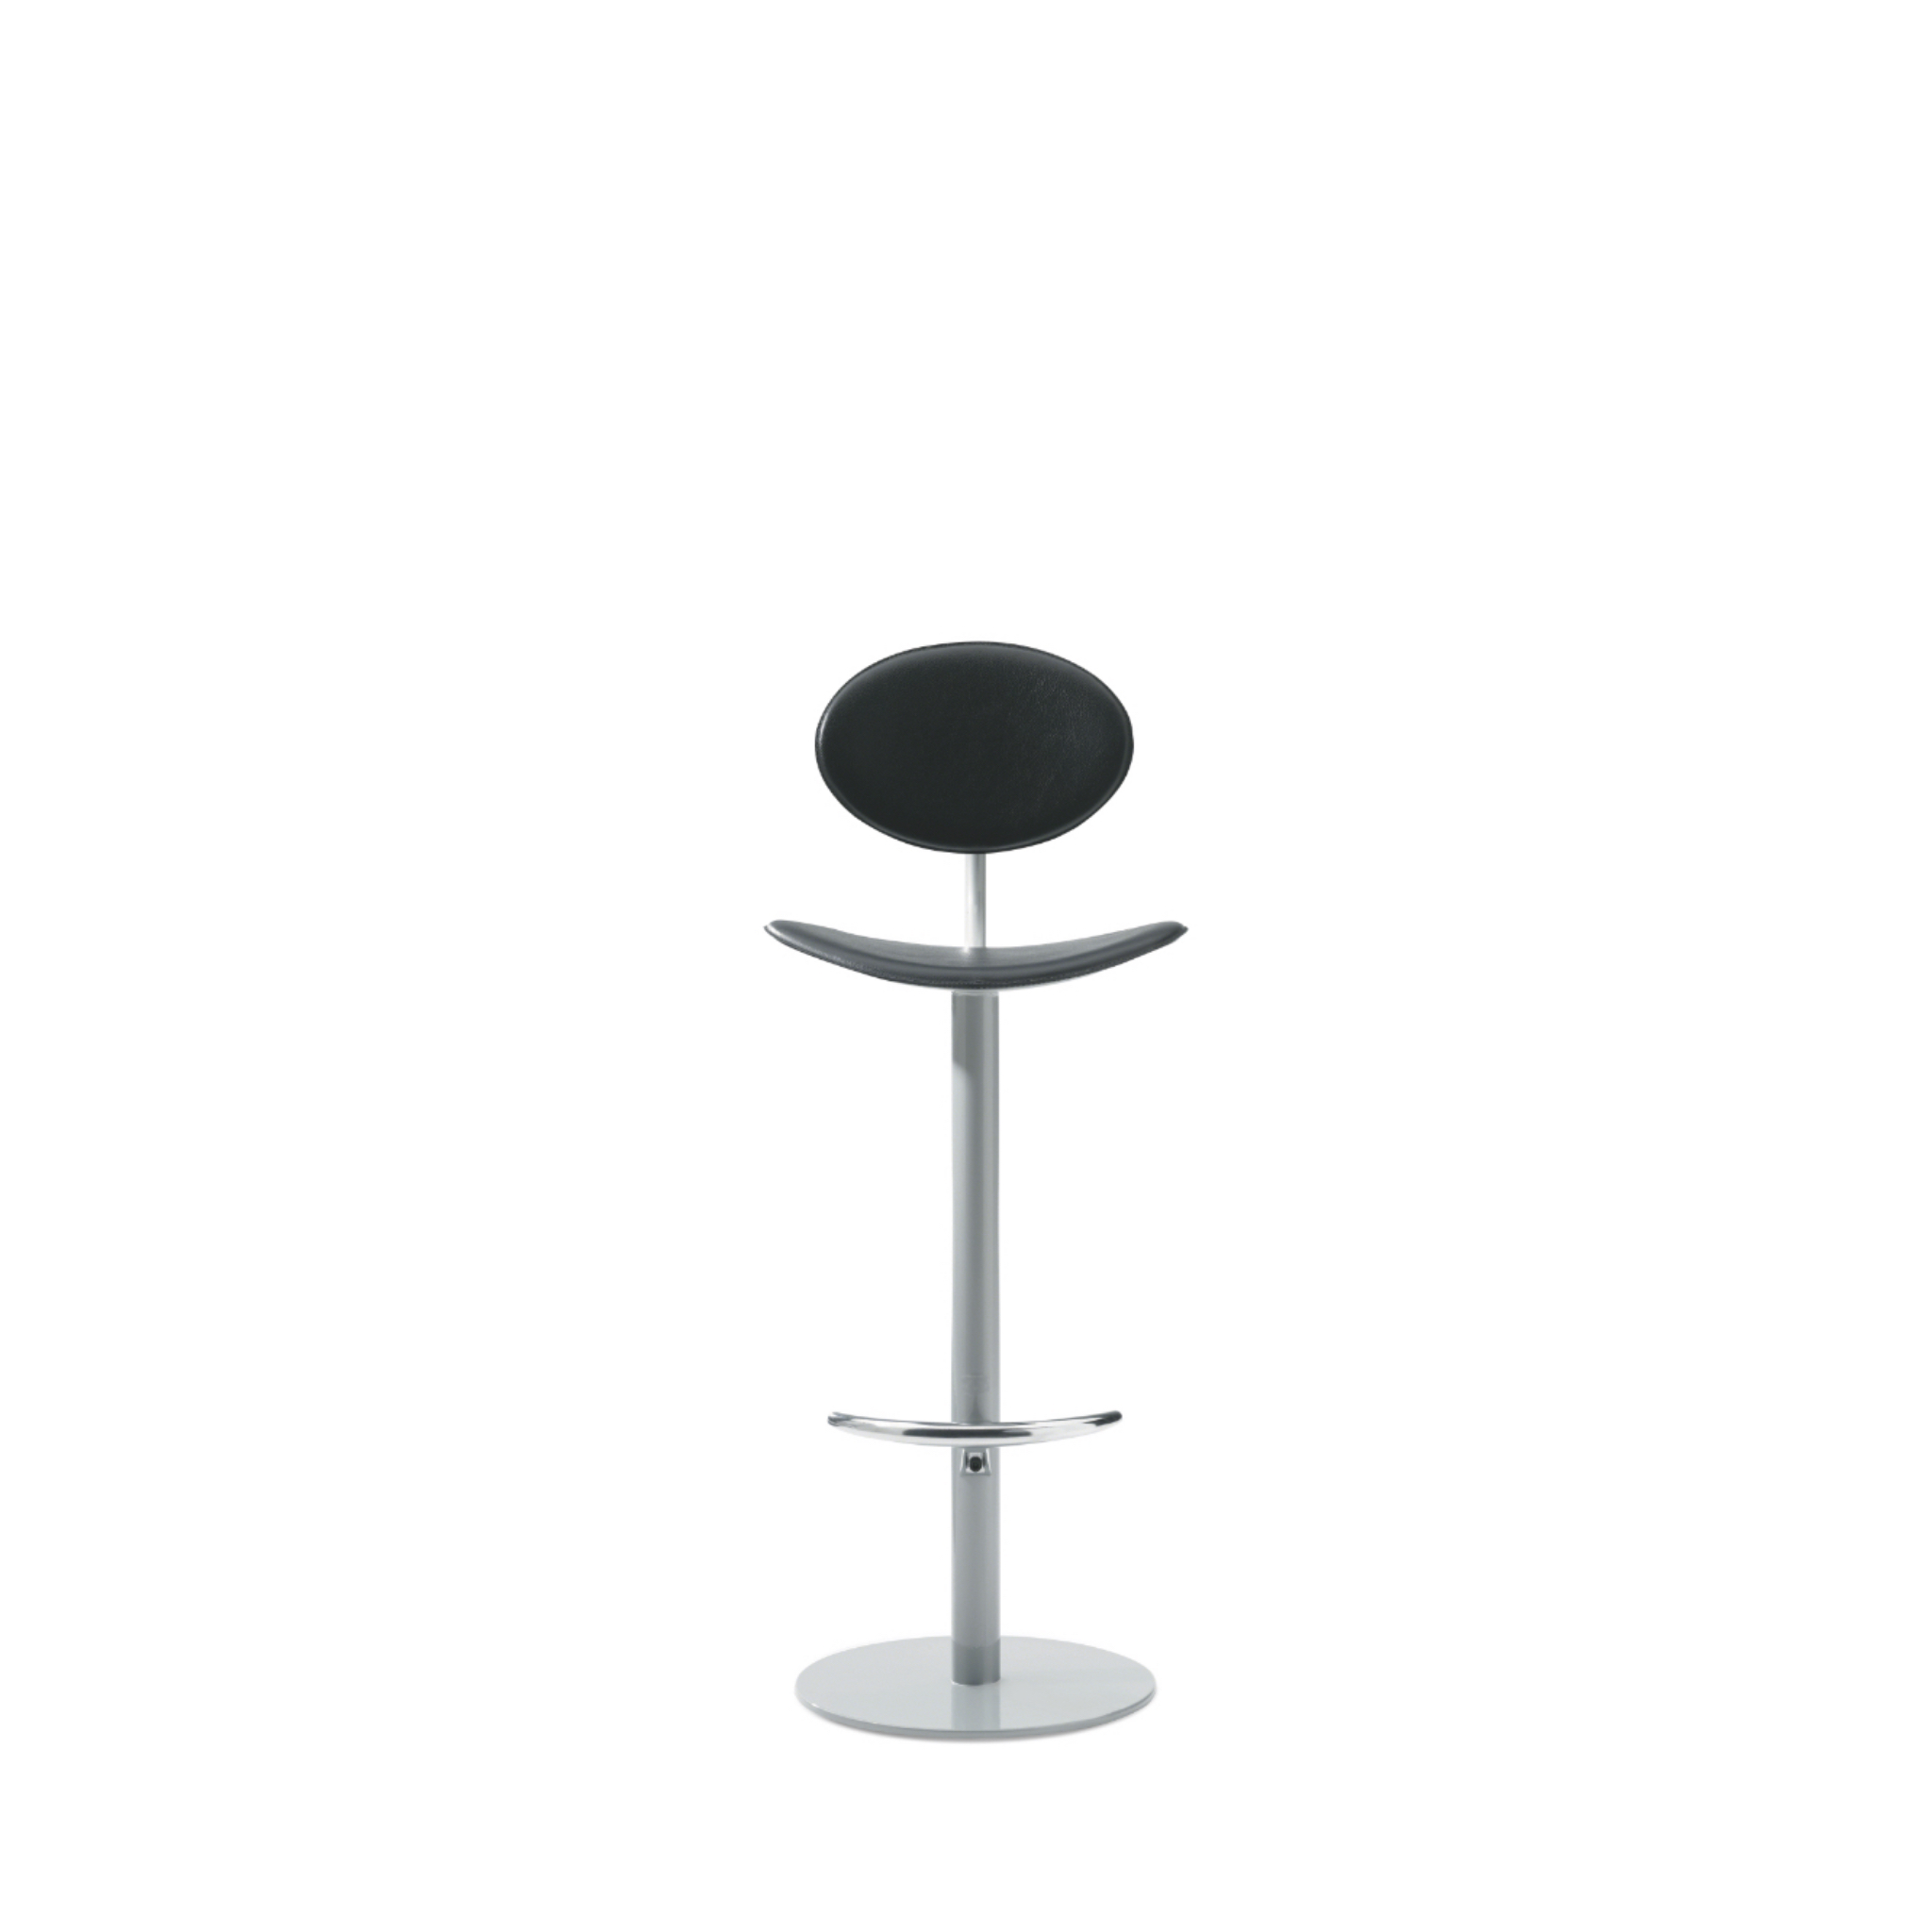 Tall, slender office stool with circular back, matching seat, and adjustable metal base